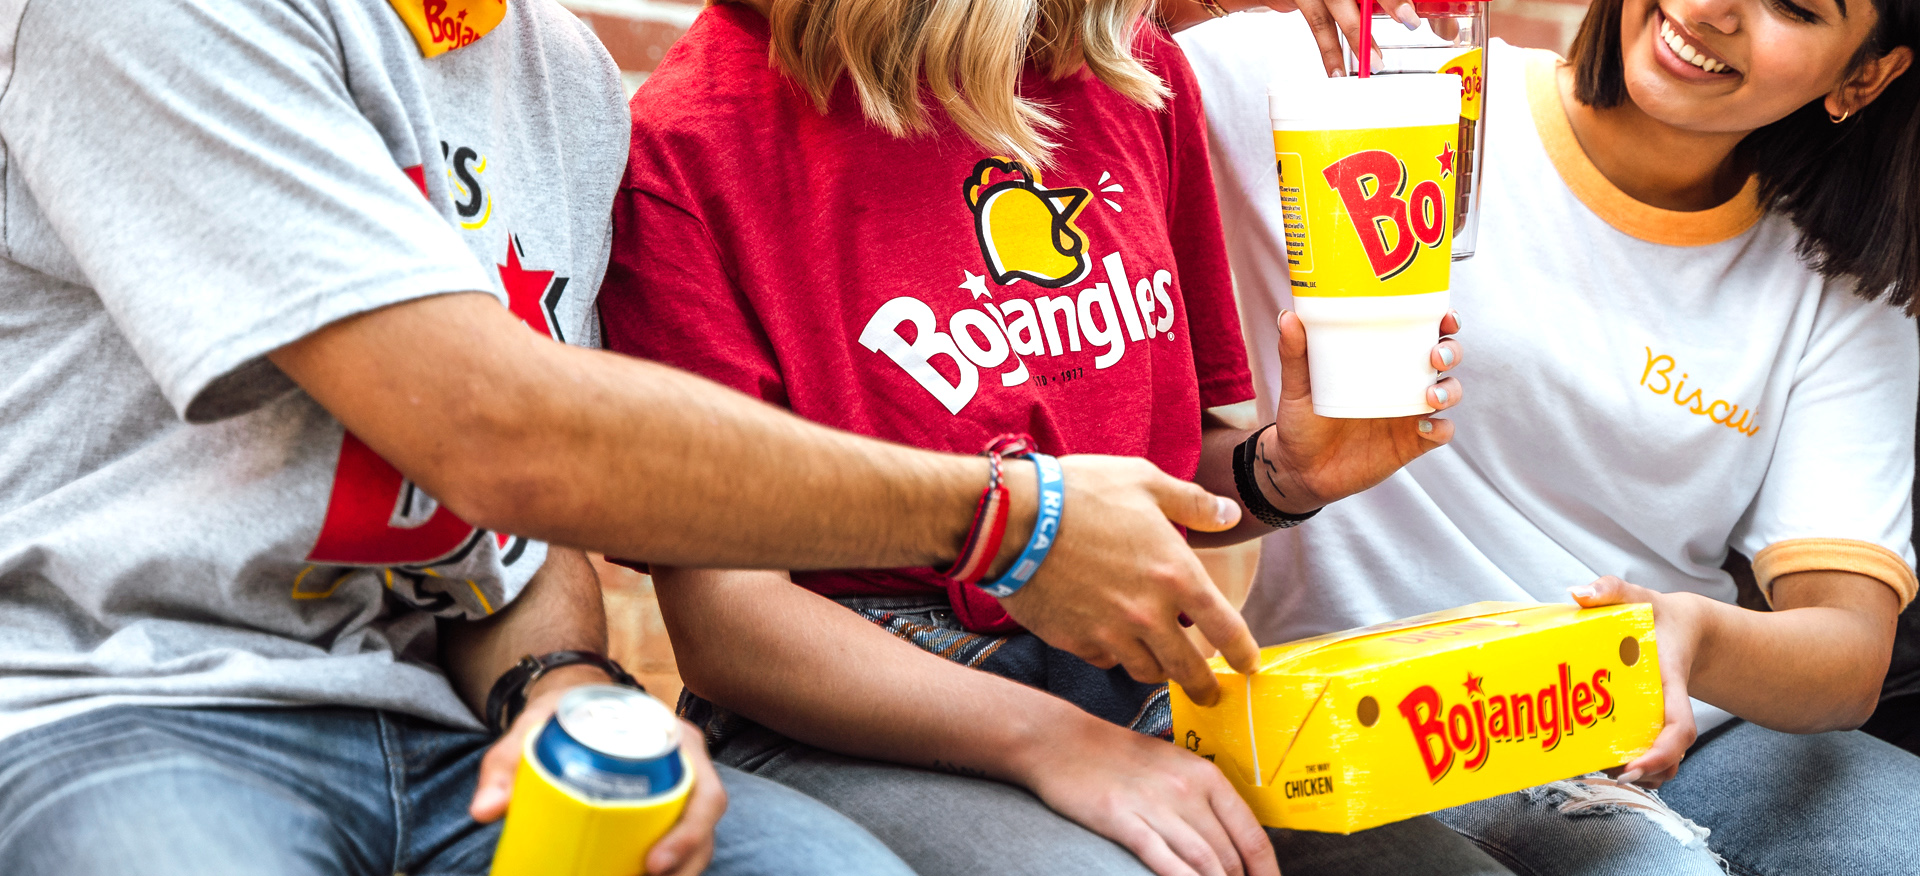 3 friends wearing Bojangles merchandise and sharing food and drinks